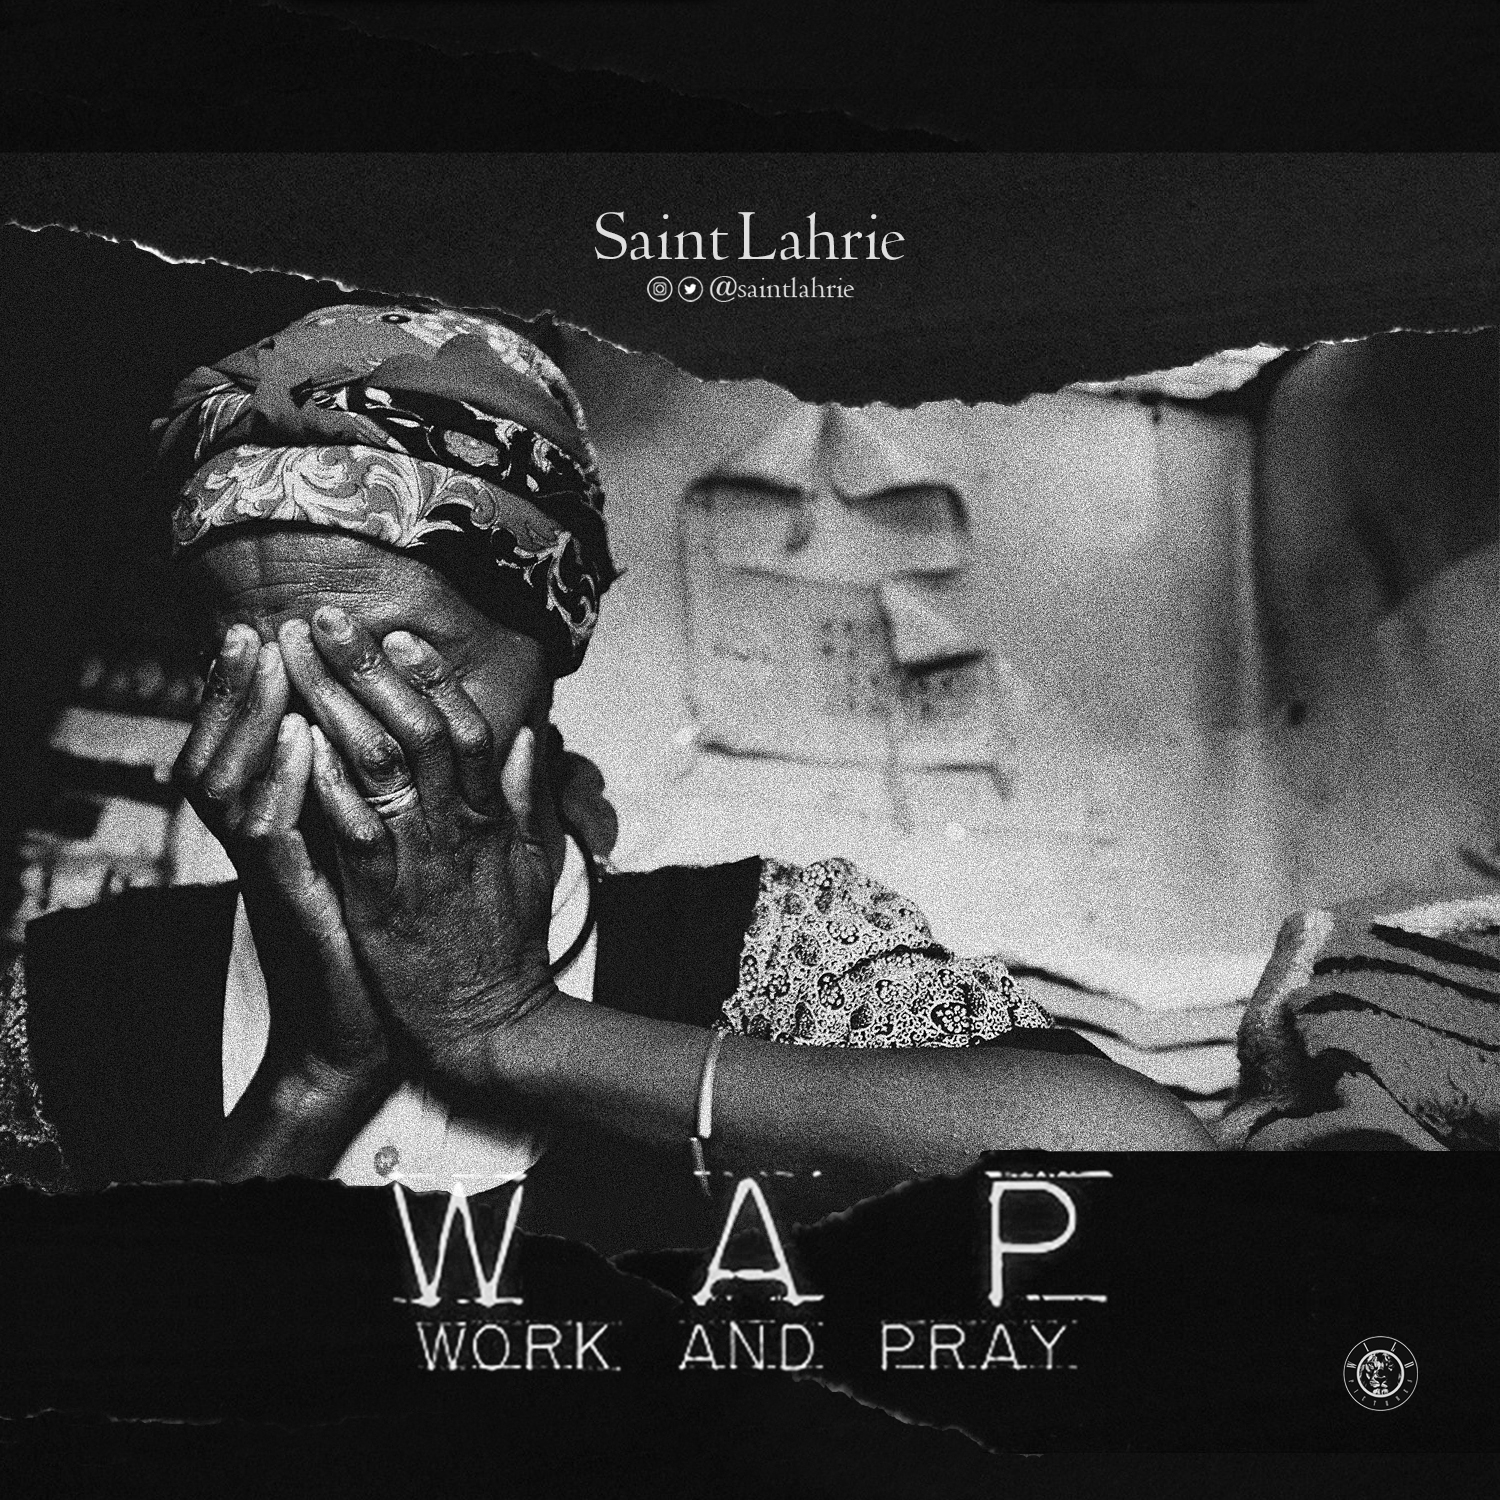 Music: Saint Lahrie – Work and pray